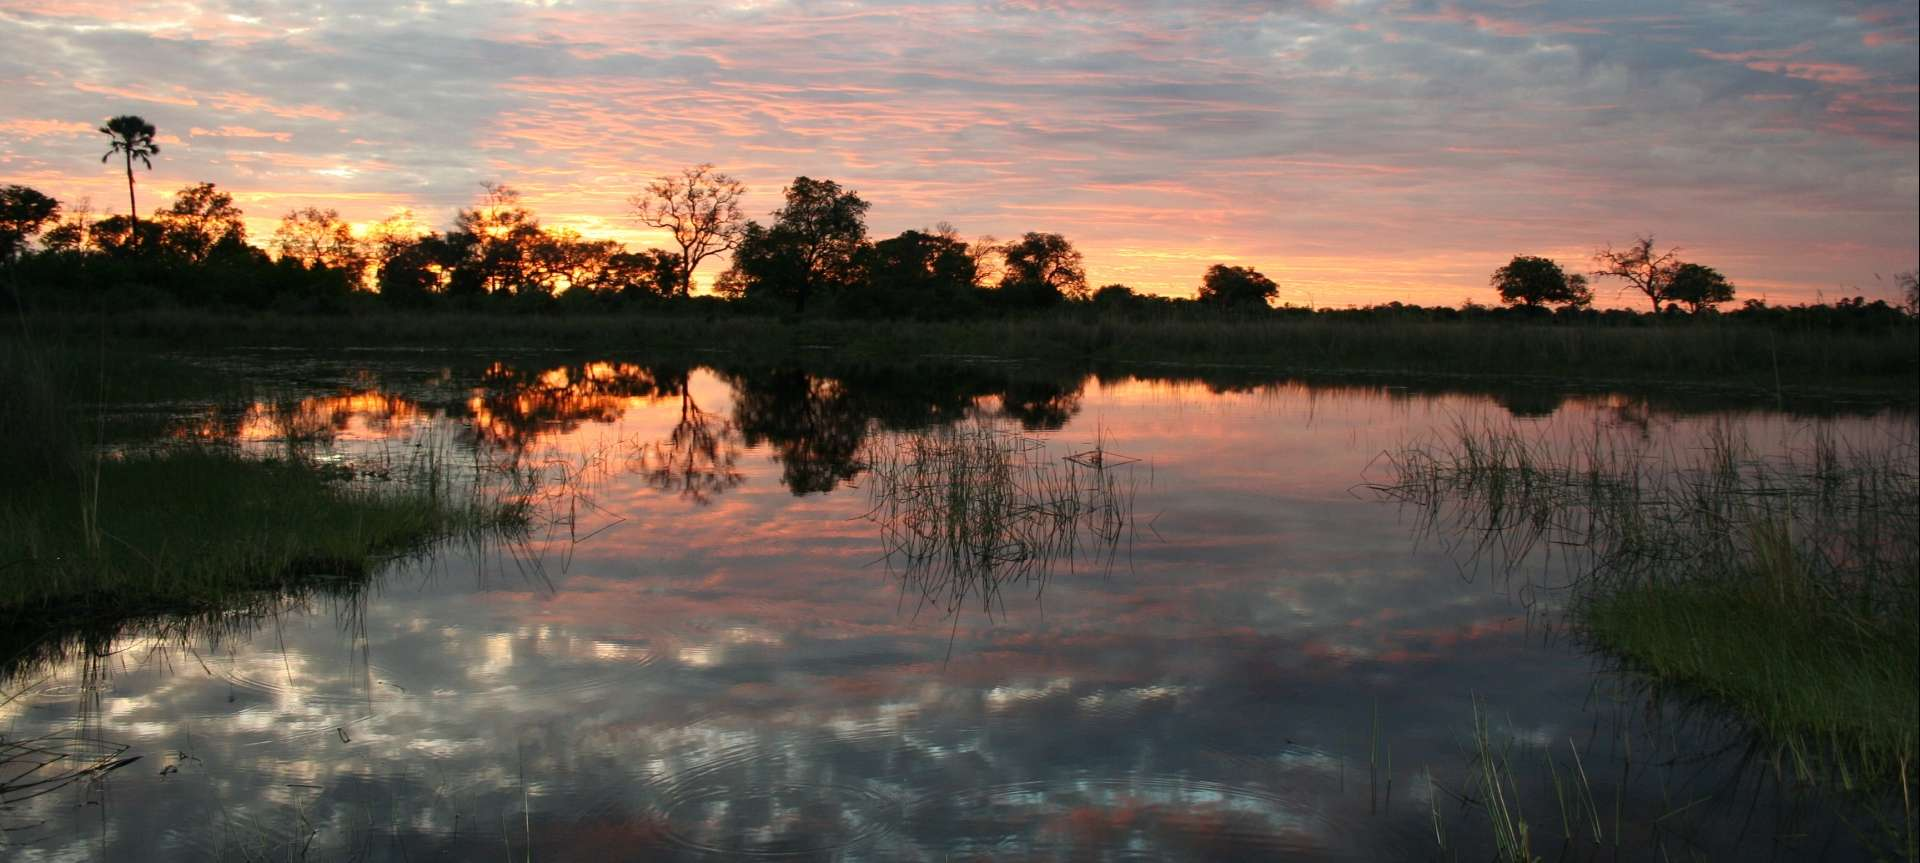 The Okavango Delta is a magical place